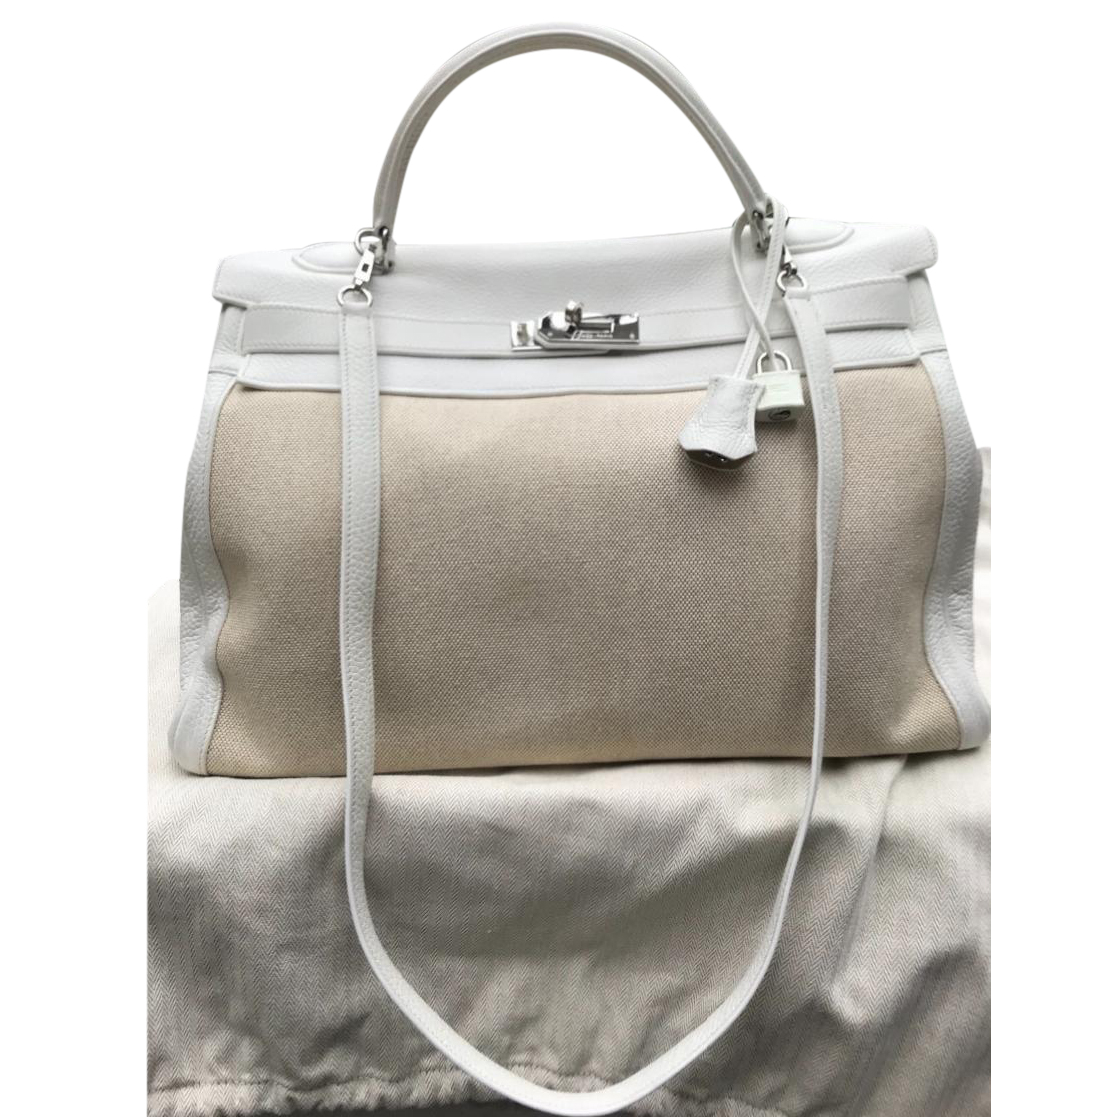 Herm�s Two Tone White Swift Leather and Toile H Kelly 35cm Bag